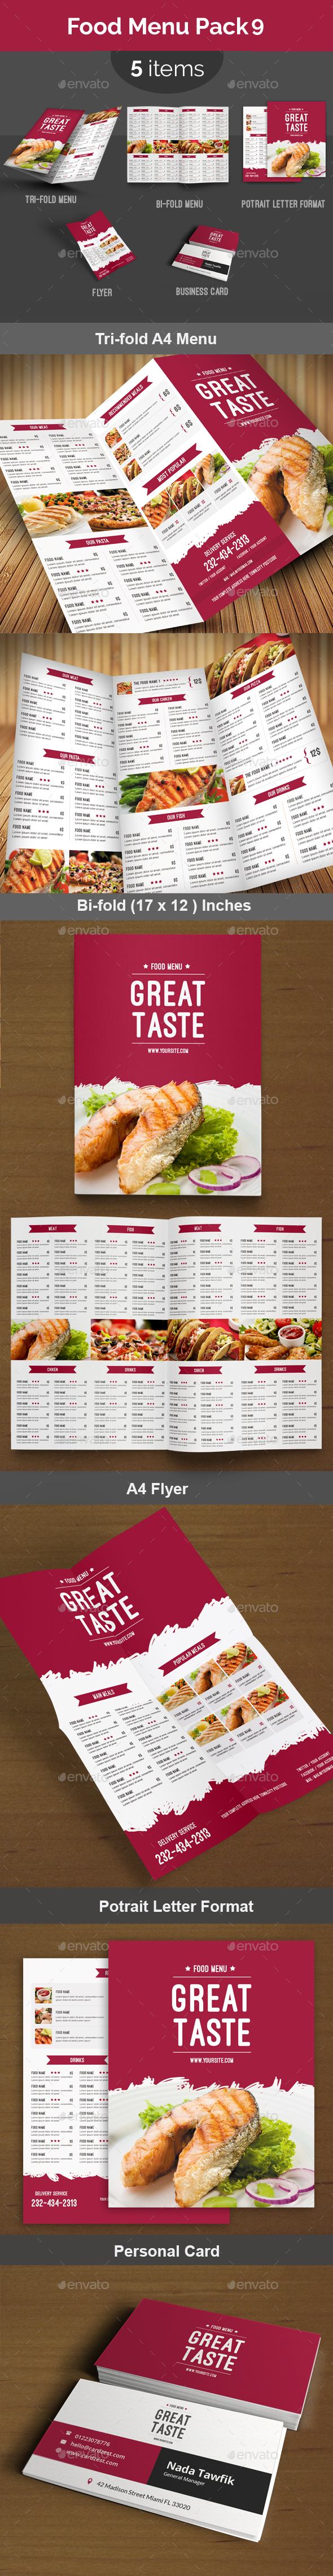 Food Menu Pack 9 - Food Menus Print Templates